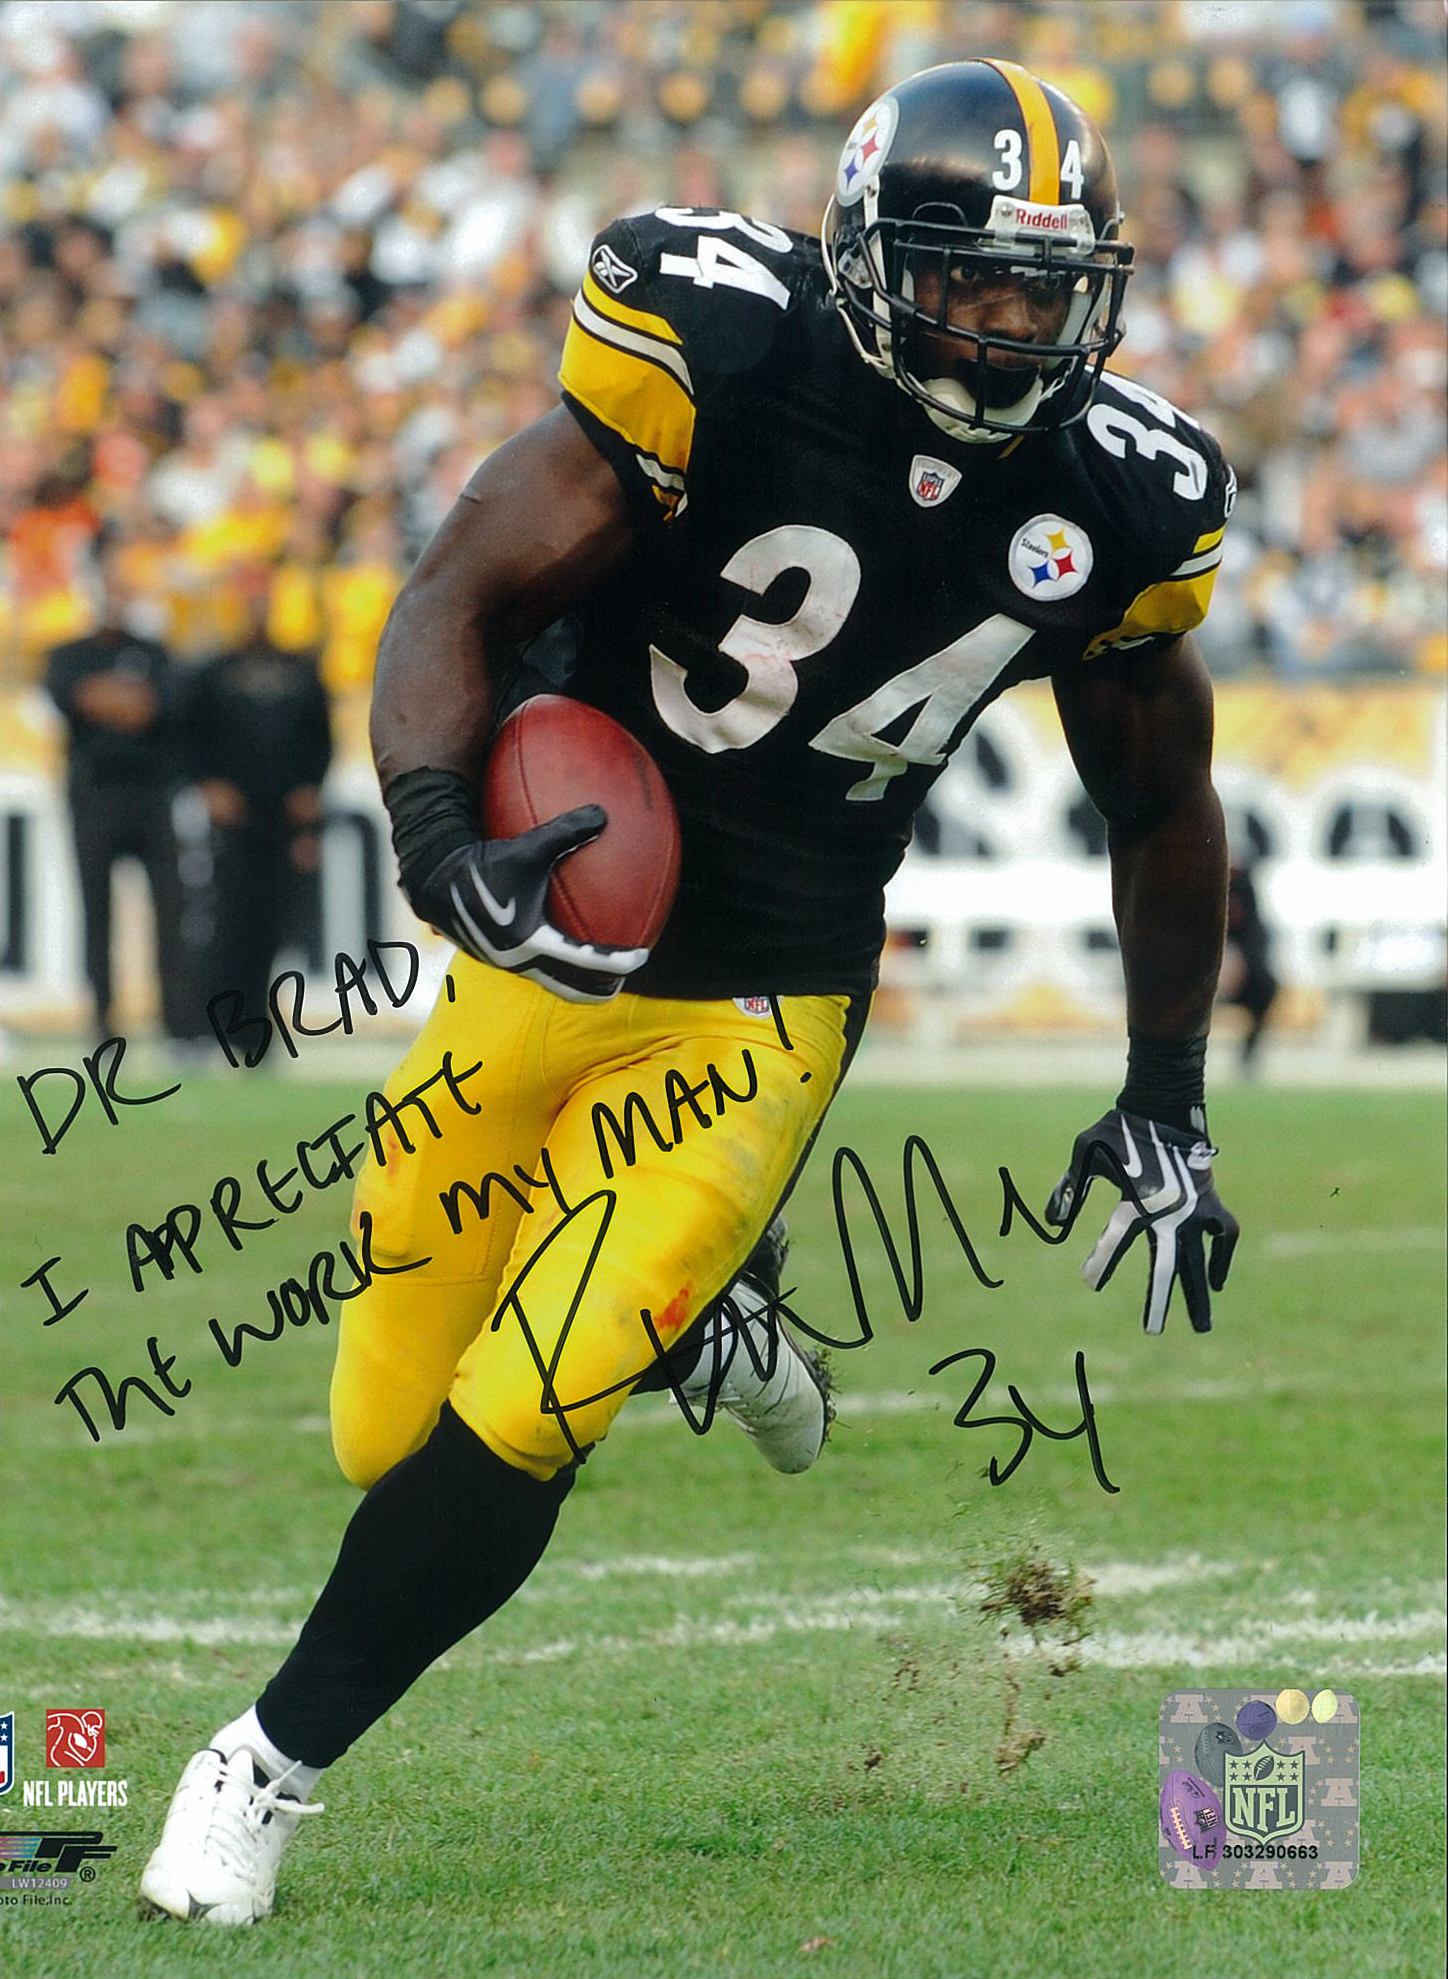 Rashard Mendenhall, #34 of the Pittsburgh Steelers